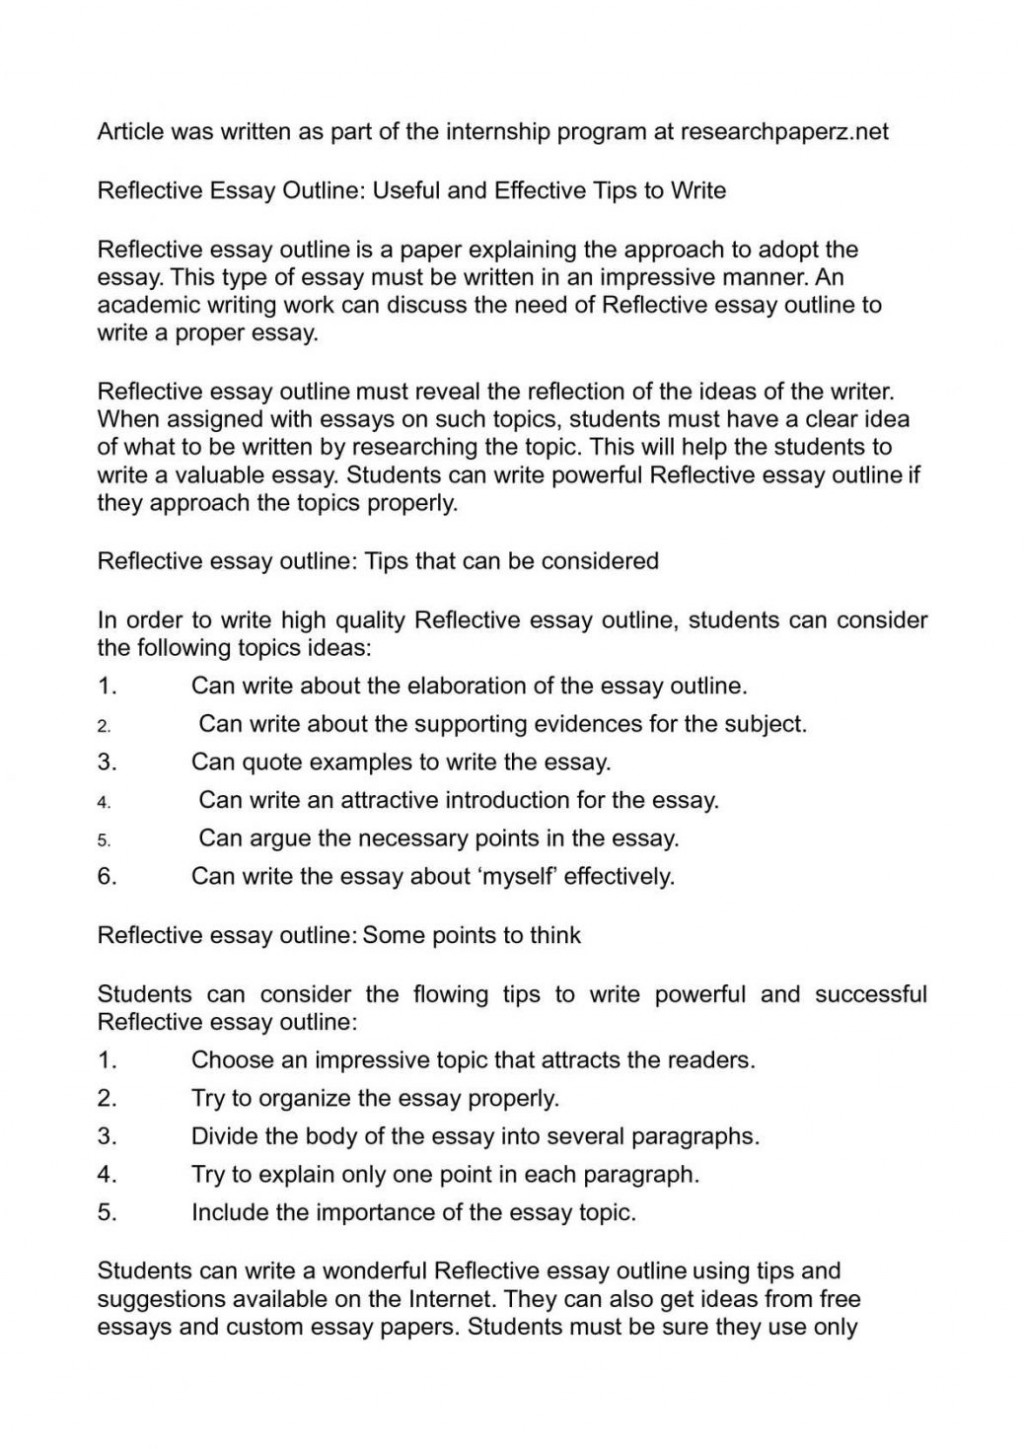 009 Research Paper Already Written Papers For Free Examples Of Reflective Writing Essays P1 Essay Outline Homework Academic Service Avessaymtbb Infra Image Inspirations Unique Pre Large